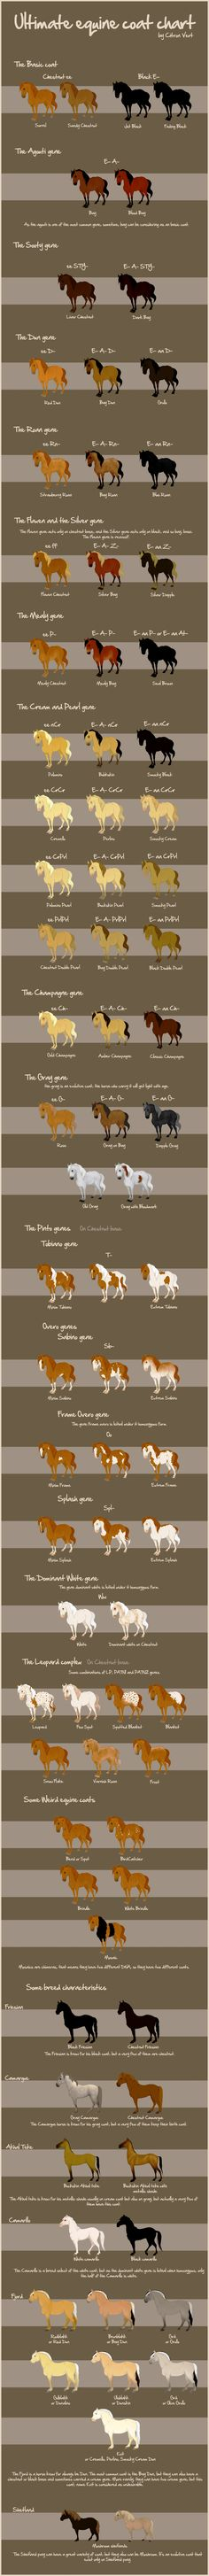 Coat colors including genetics - color characteristics by breed. For future reference.